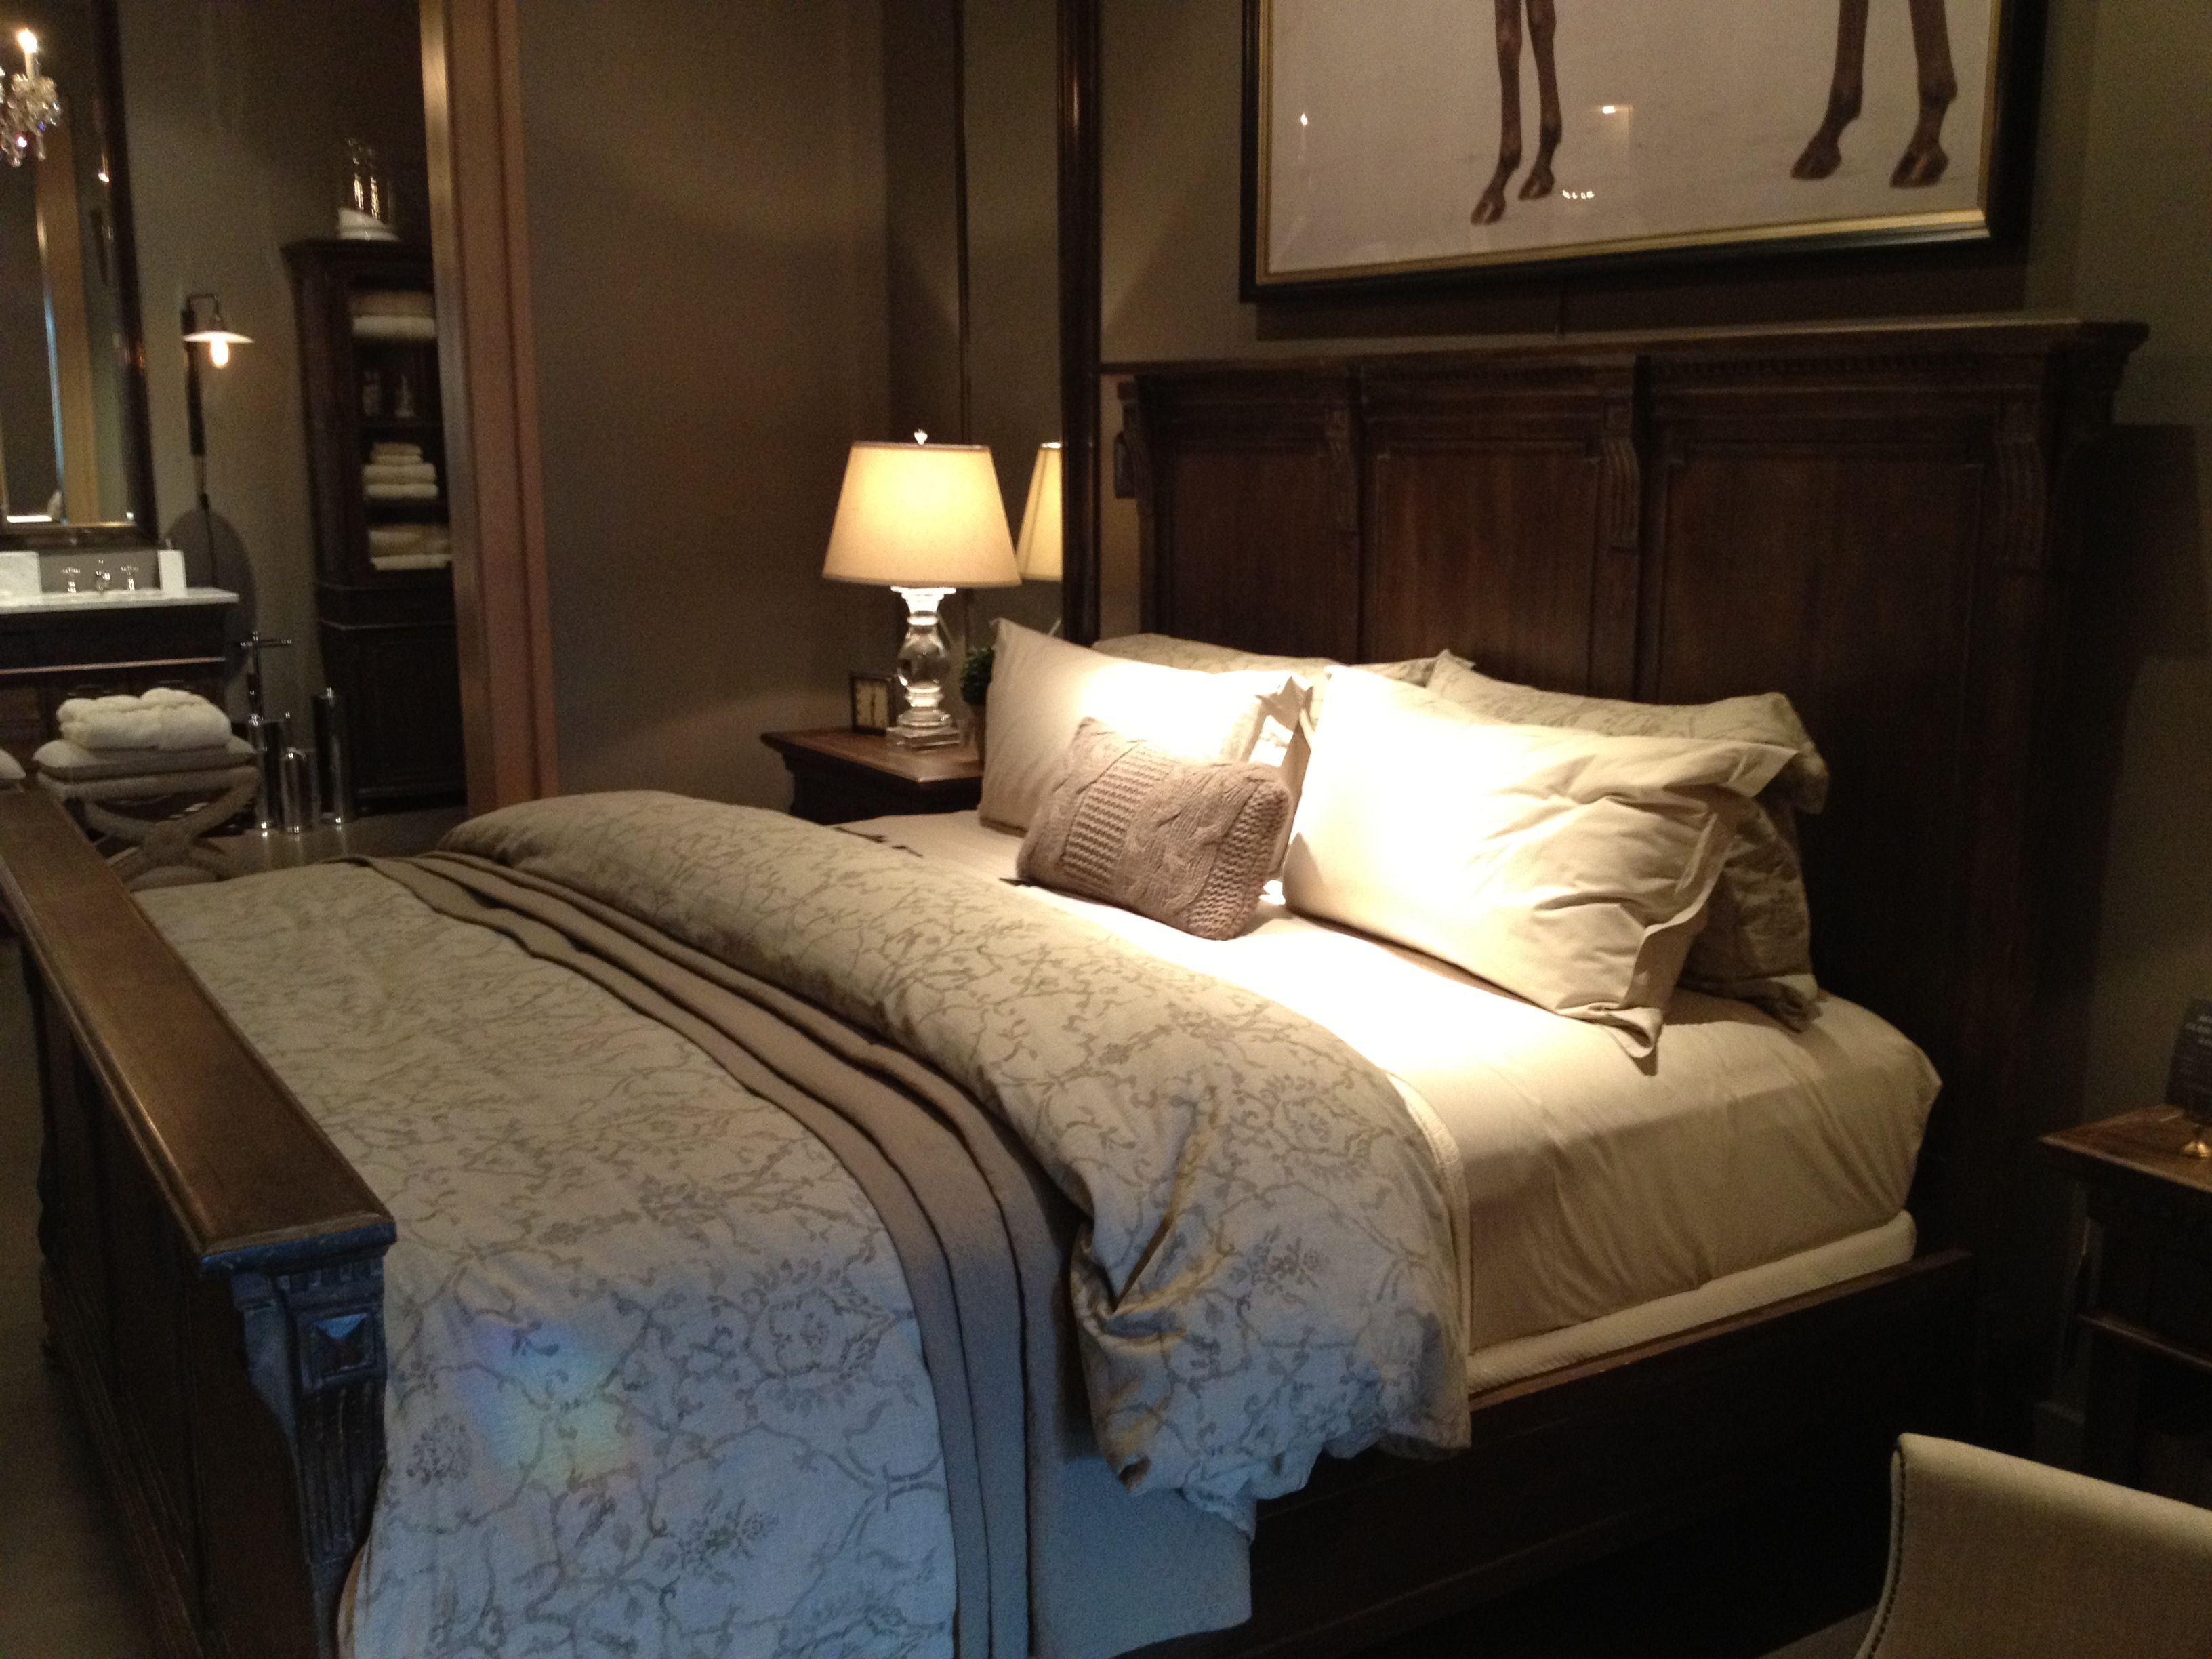 Restoration hardware bedroom - Restoration Hardware Bedroom B Likes Bedding And Bed Does Not Like Horse Print